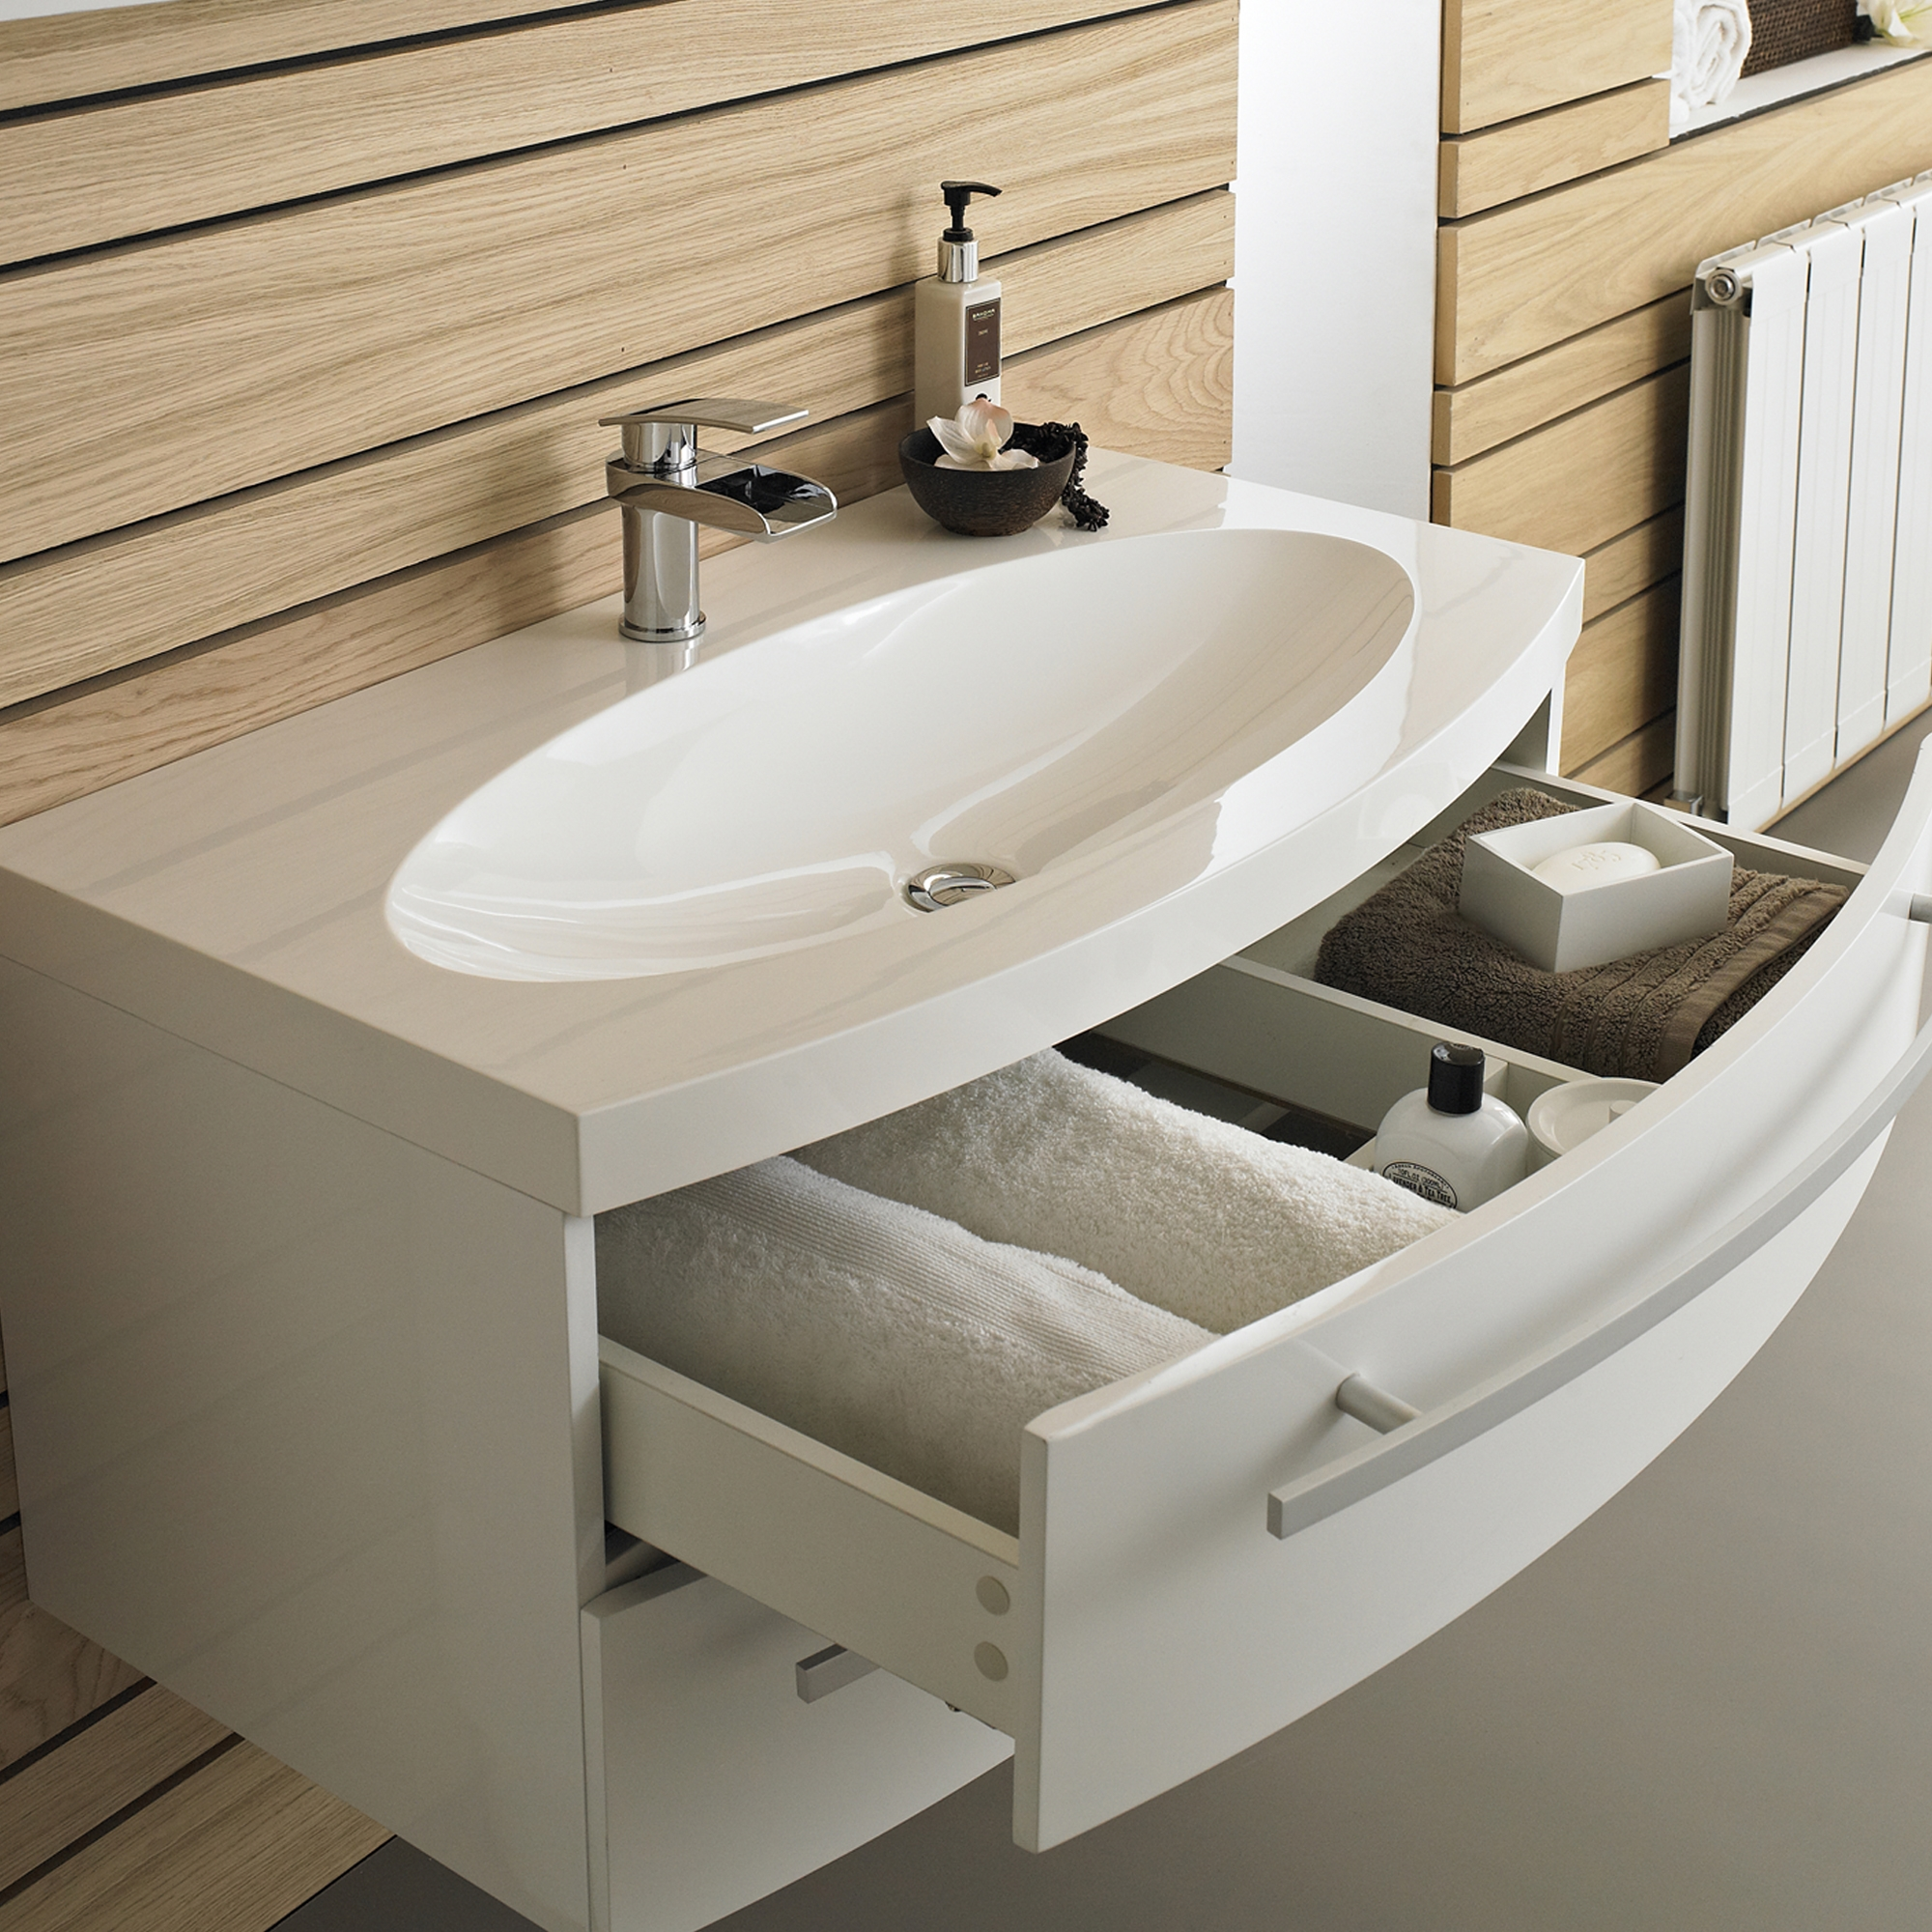 Hudson Reed Vanguard Wall Mounted Bathroom Vanity Unit and Basin 900mm Wide White 1 Tap Hole-1